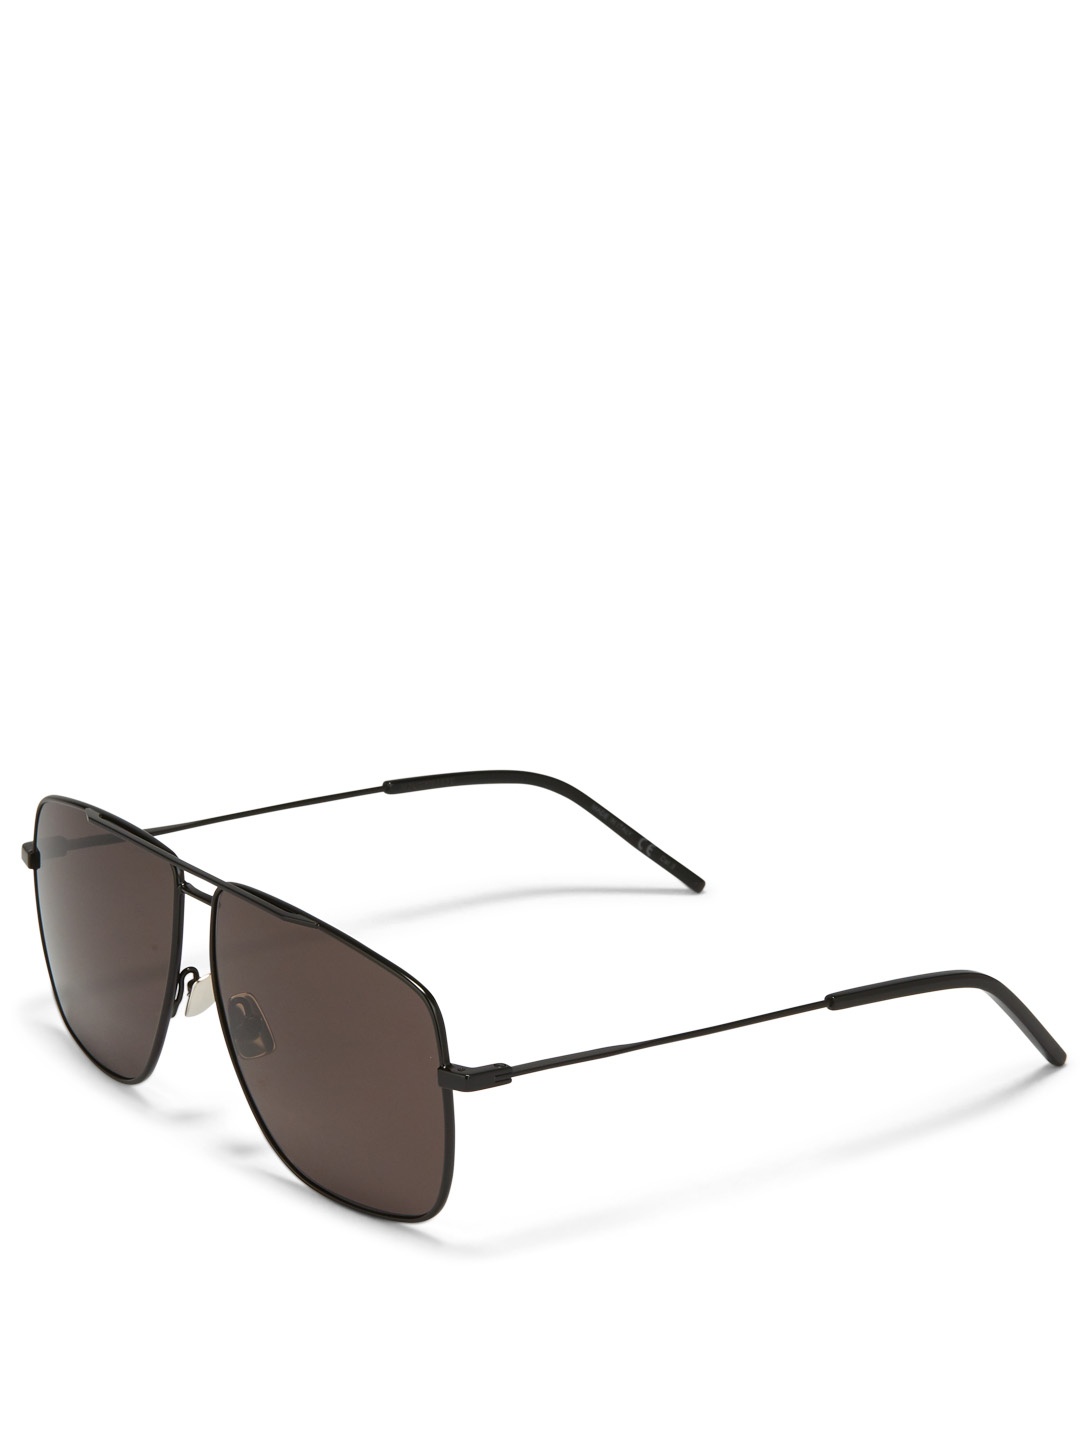 SAINT LAURENT 251 Aviator Sunglasses Men's Black